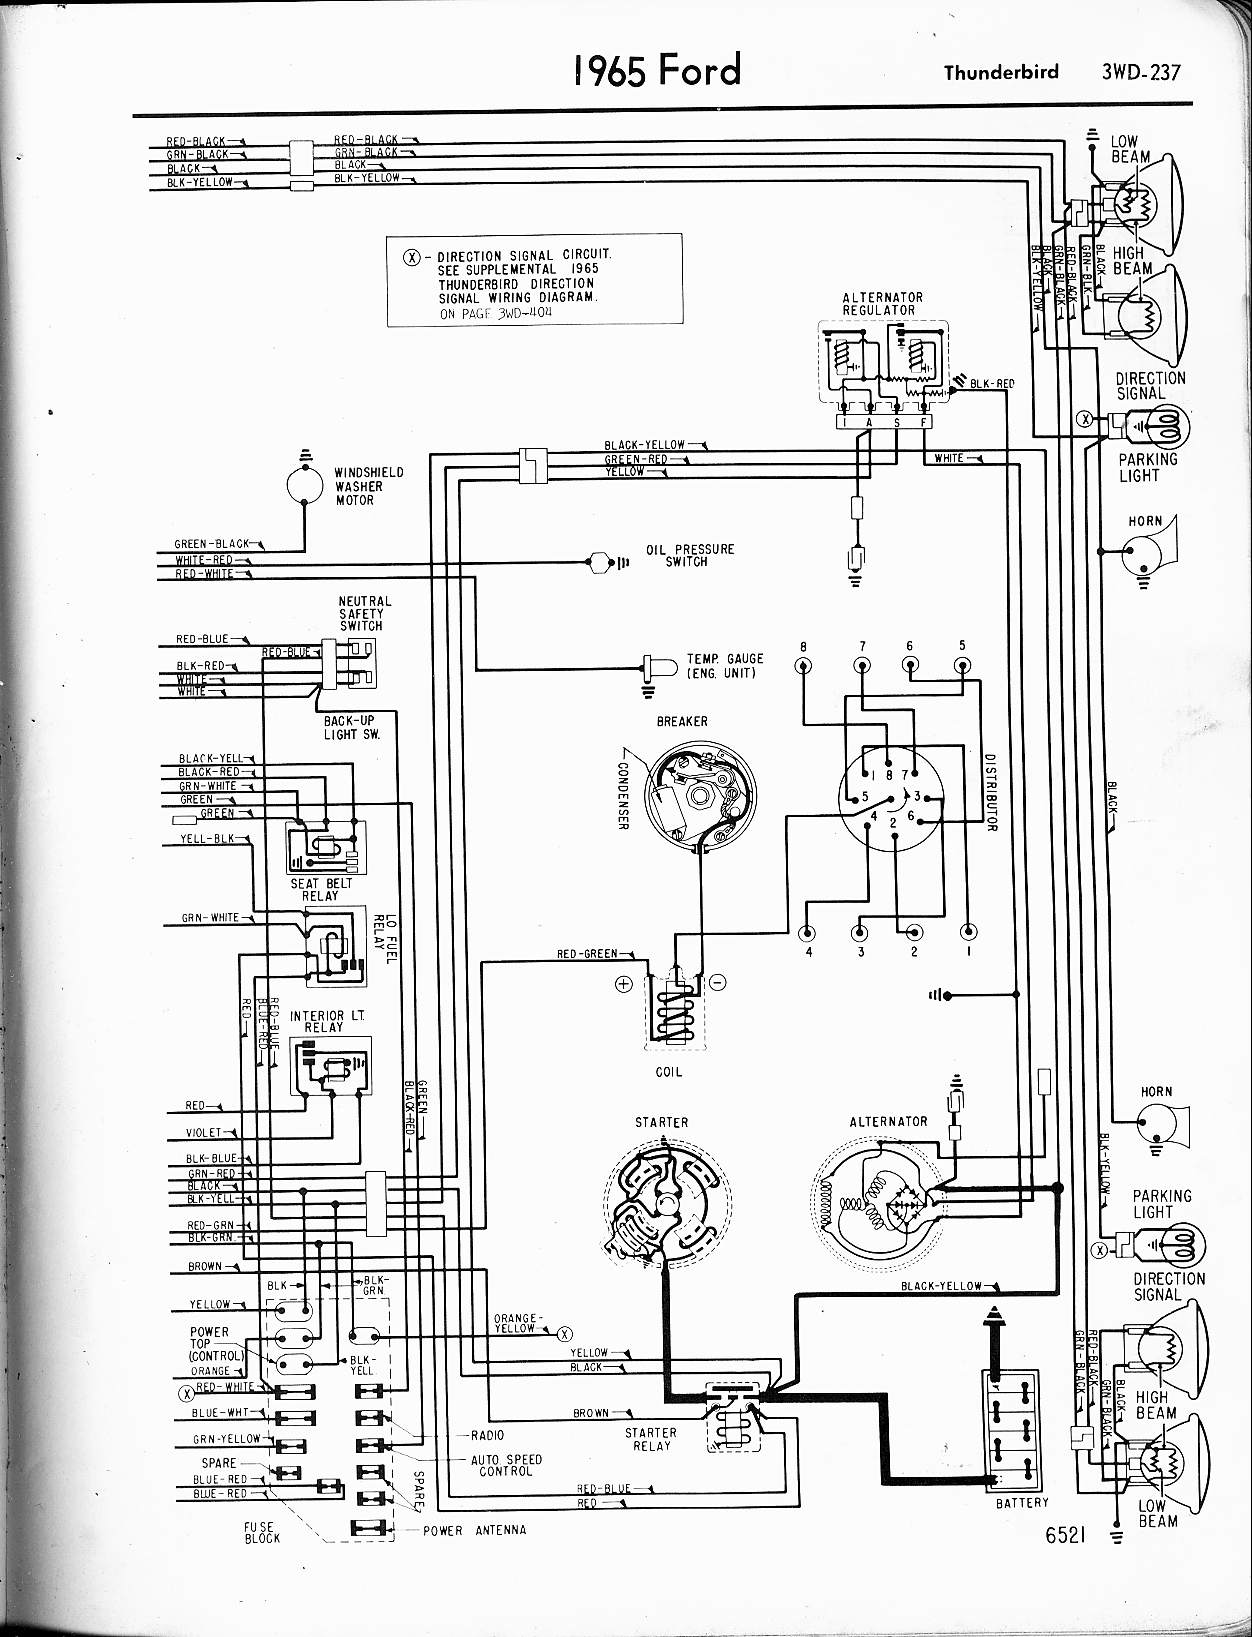 MWire5765 237 57 65 ford wiring diagrams 1965 thunderbird alternator wiring diagram at crackthecode.co